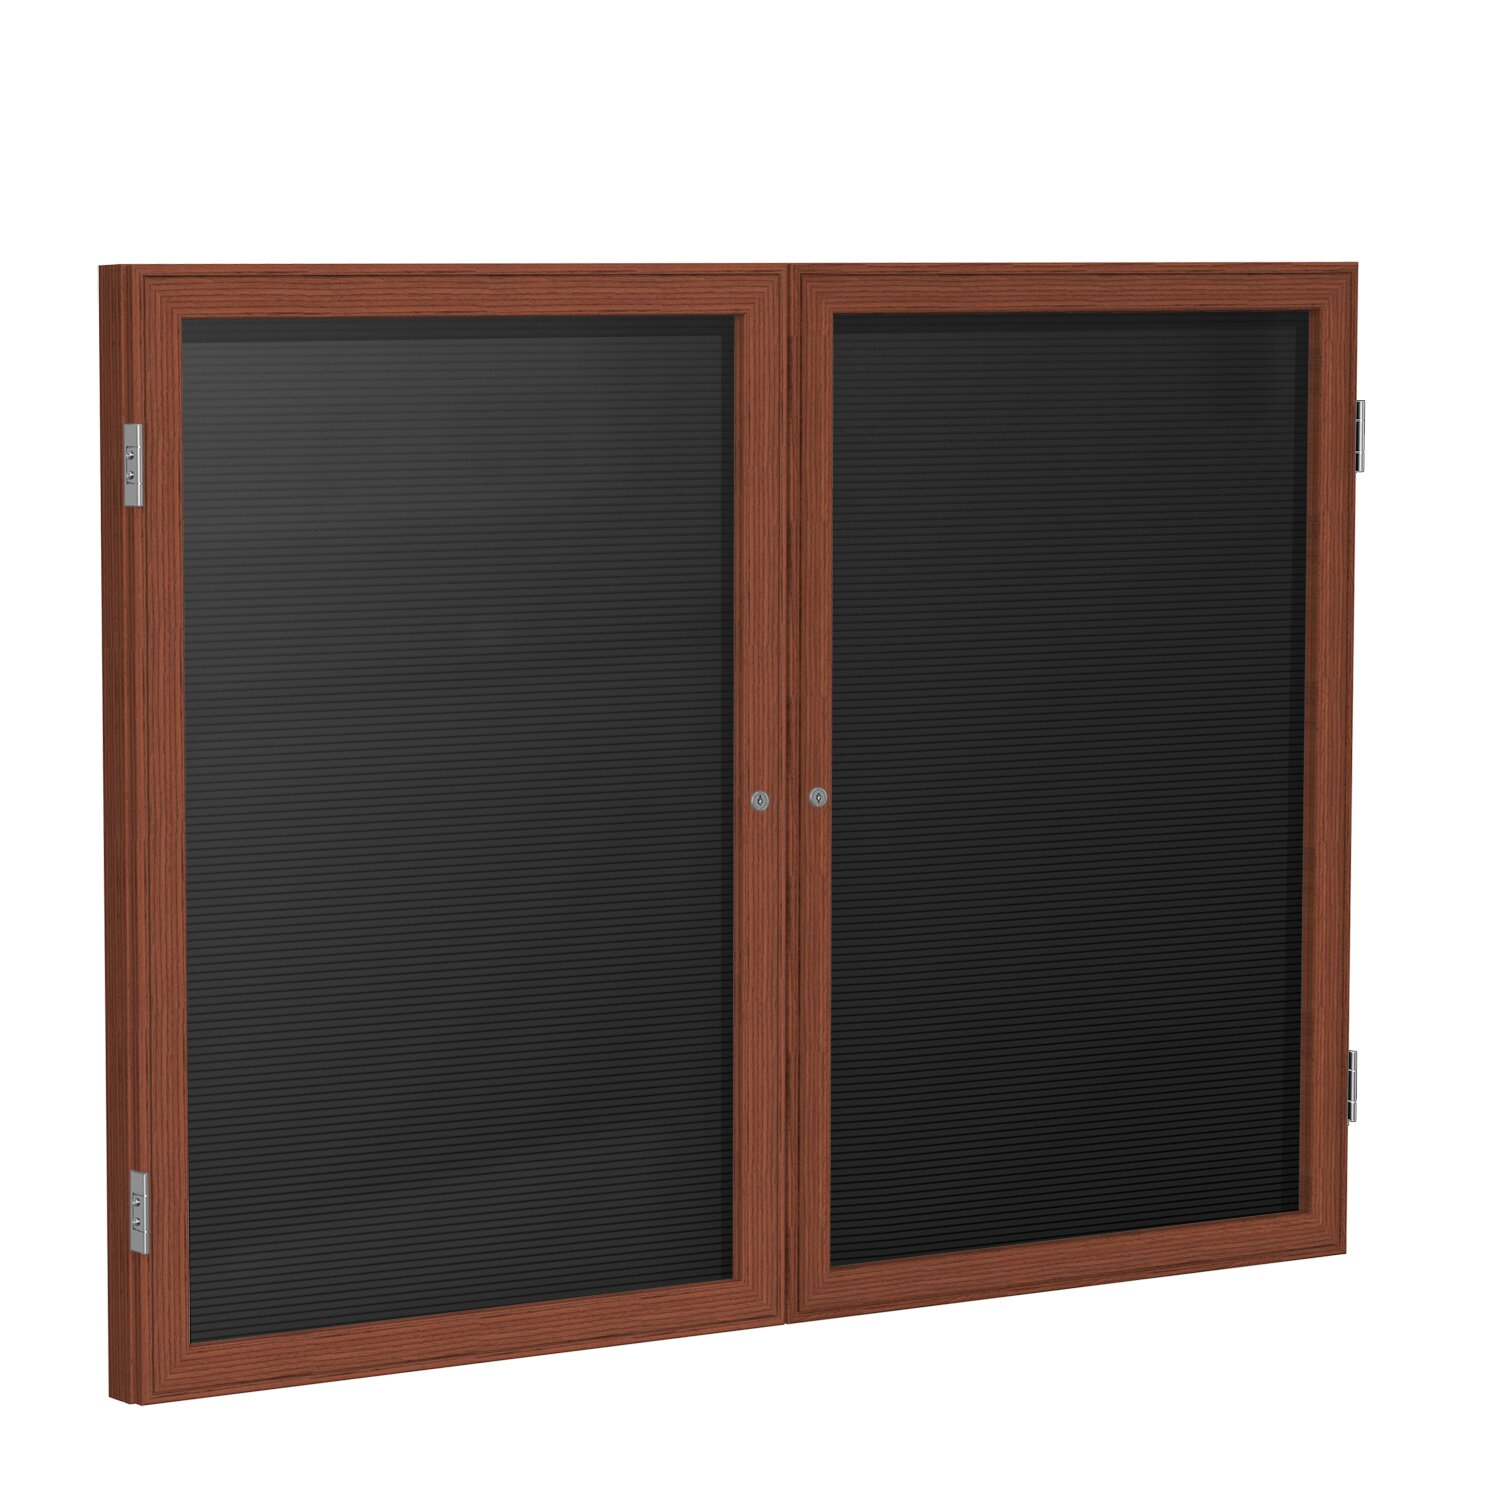 Ghent 2 door wood frame enclosed letter board wayfair supply for Enclosed bed frame